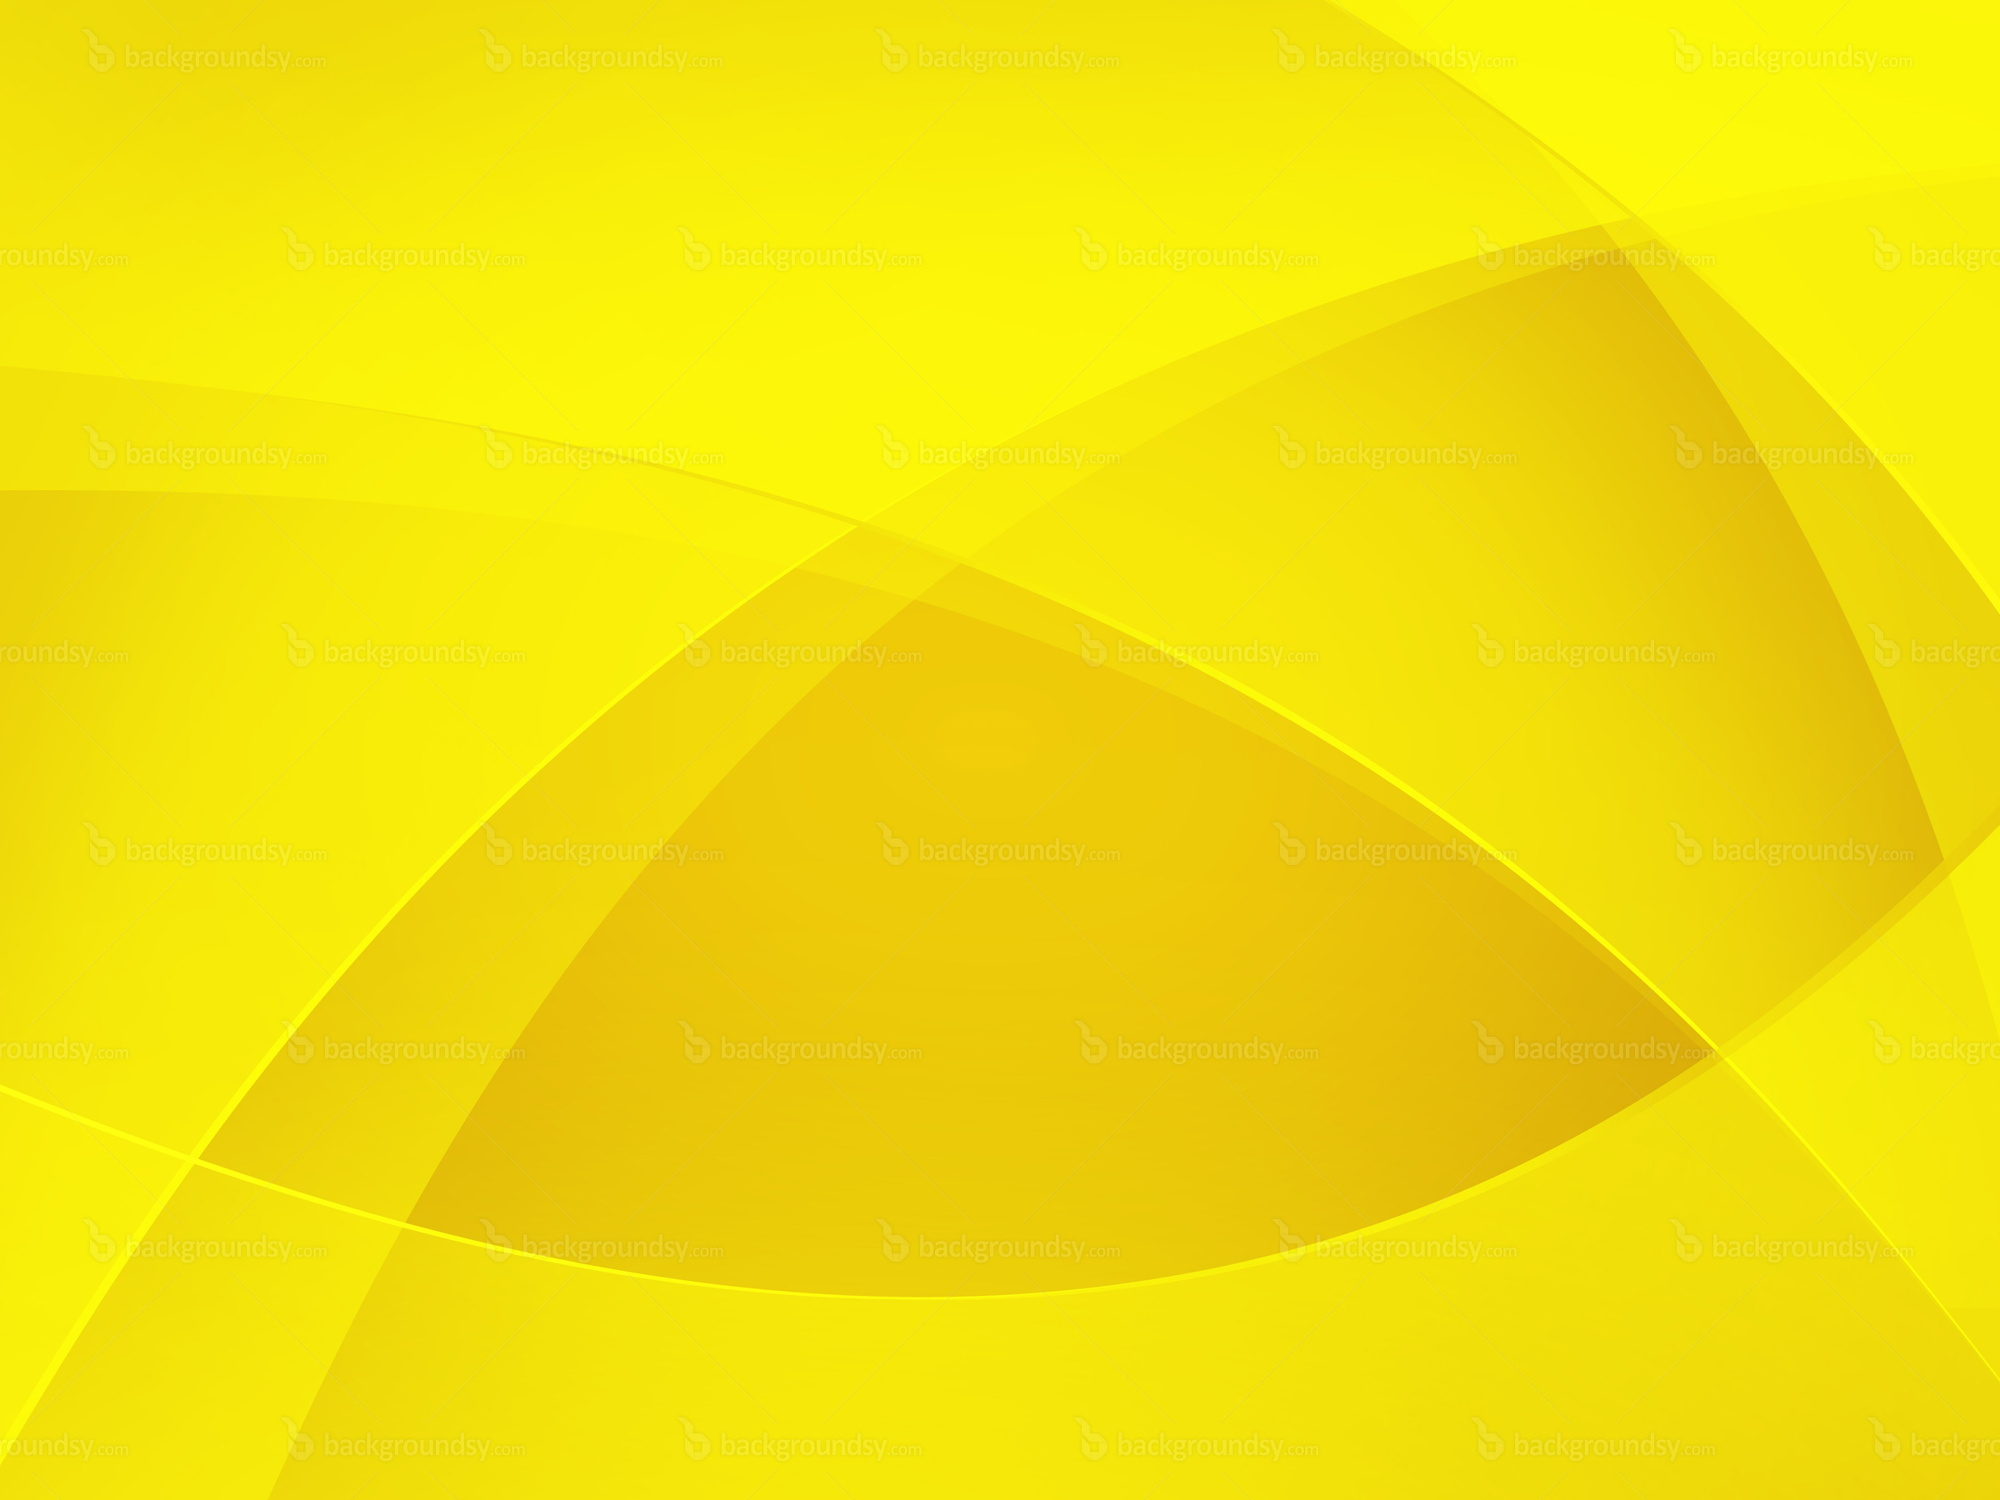 Yellow background | Backgroundsy.com